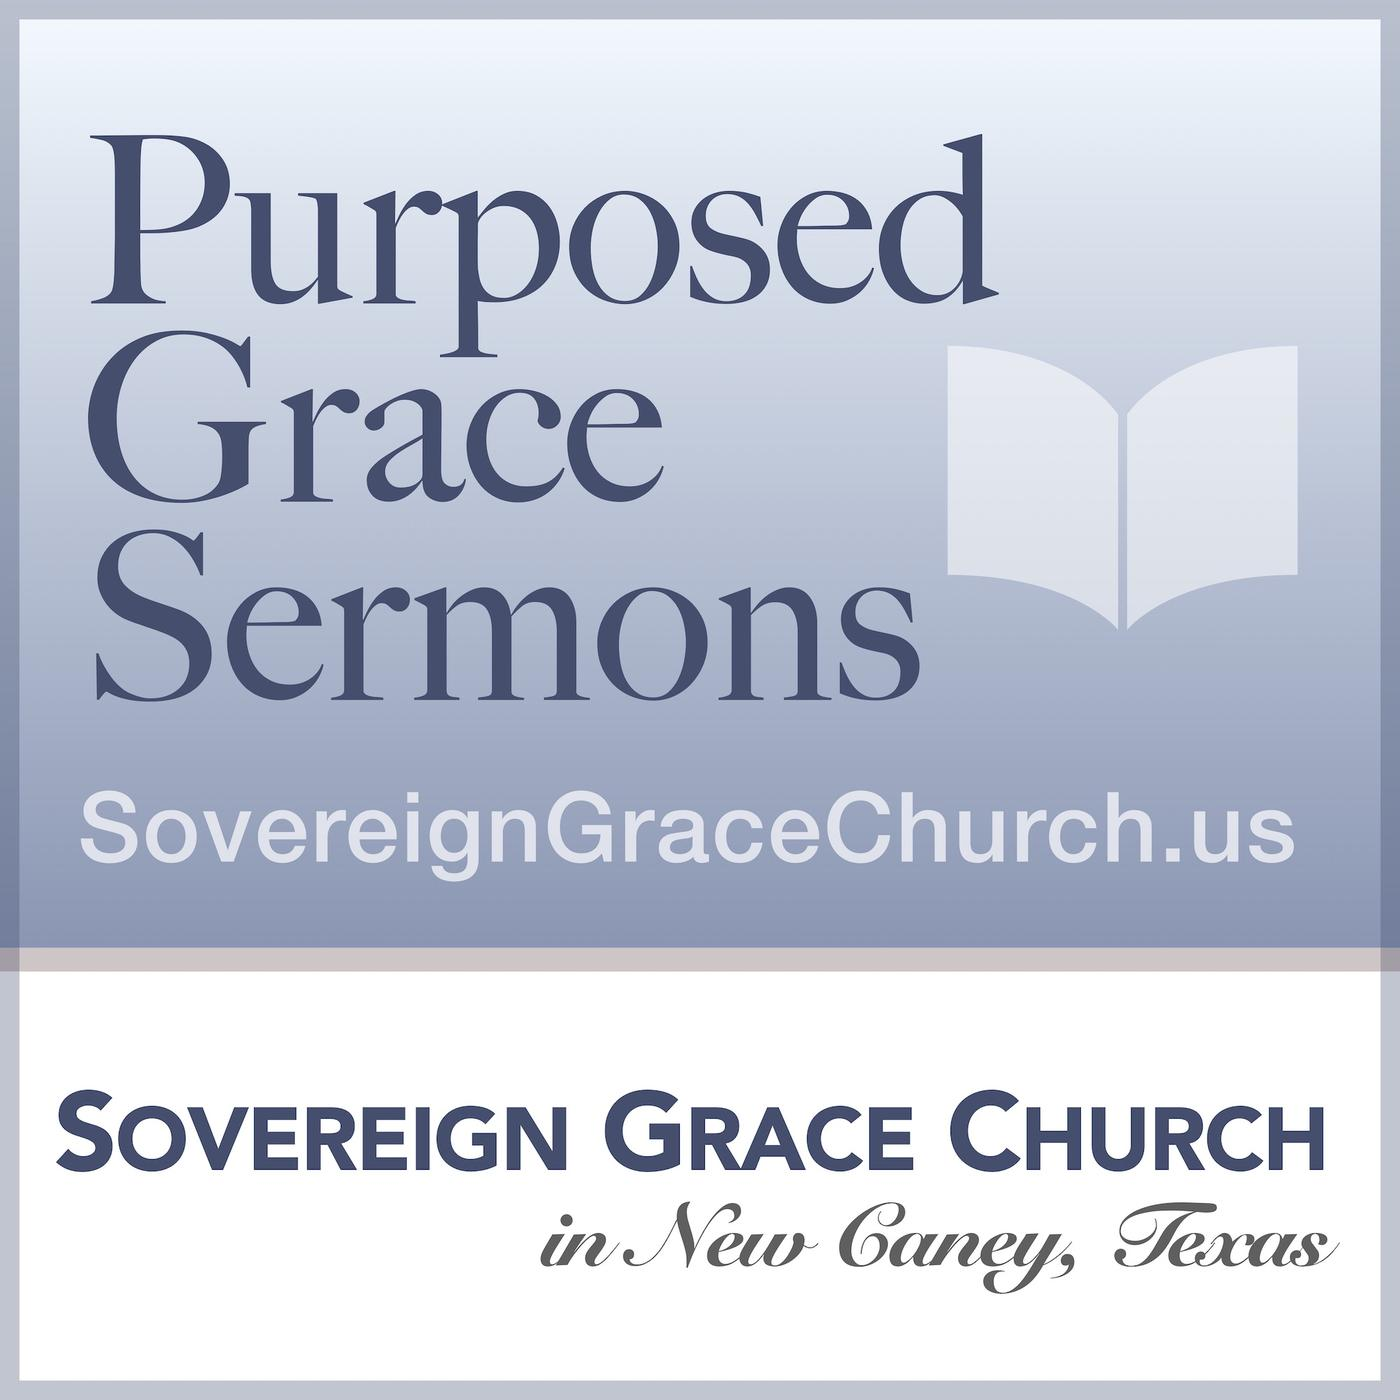 Purposed Grace Sermons (podcast) - Sovereign Grace Church in